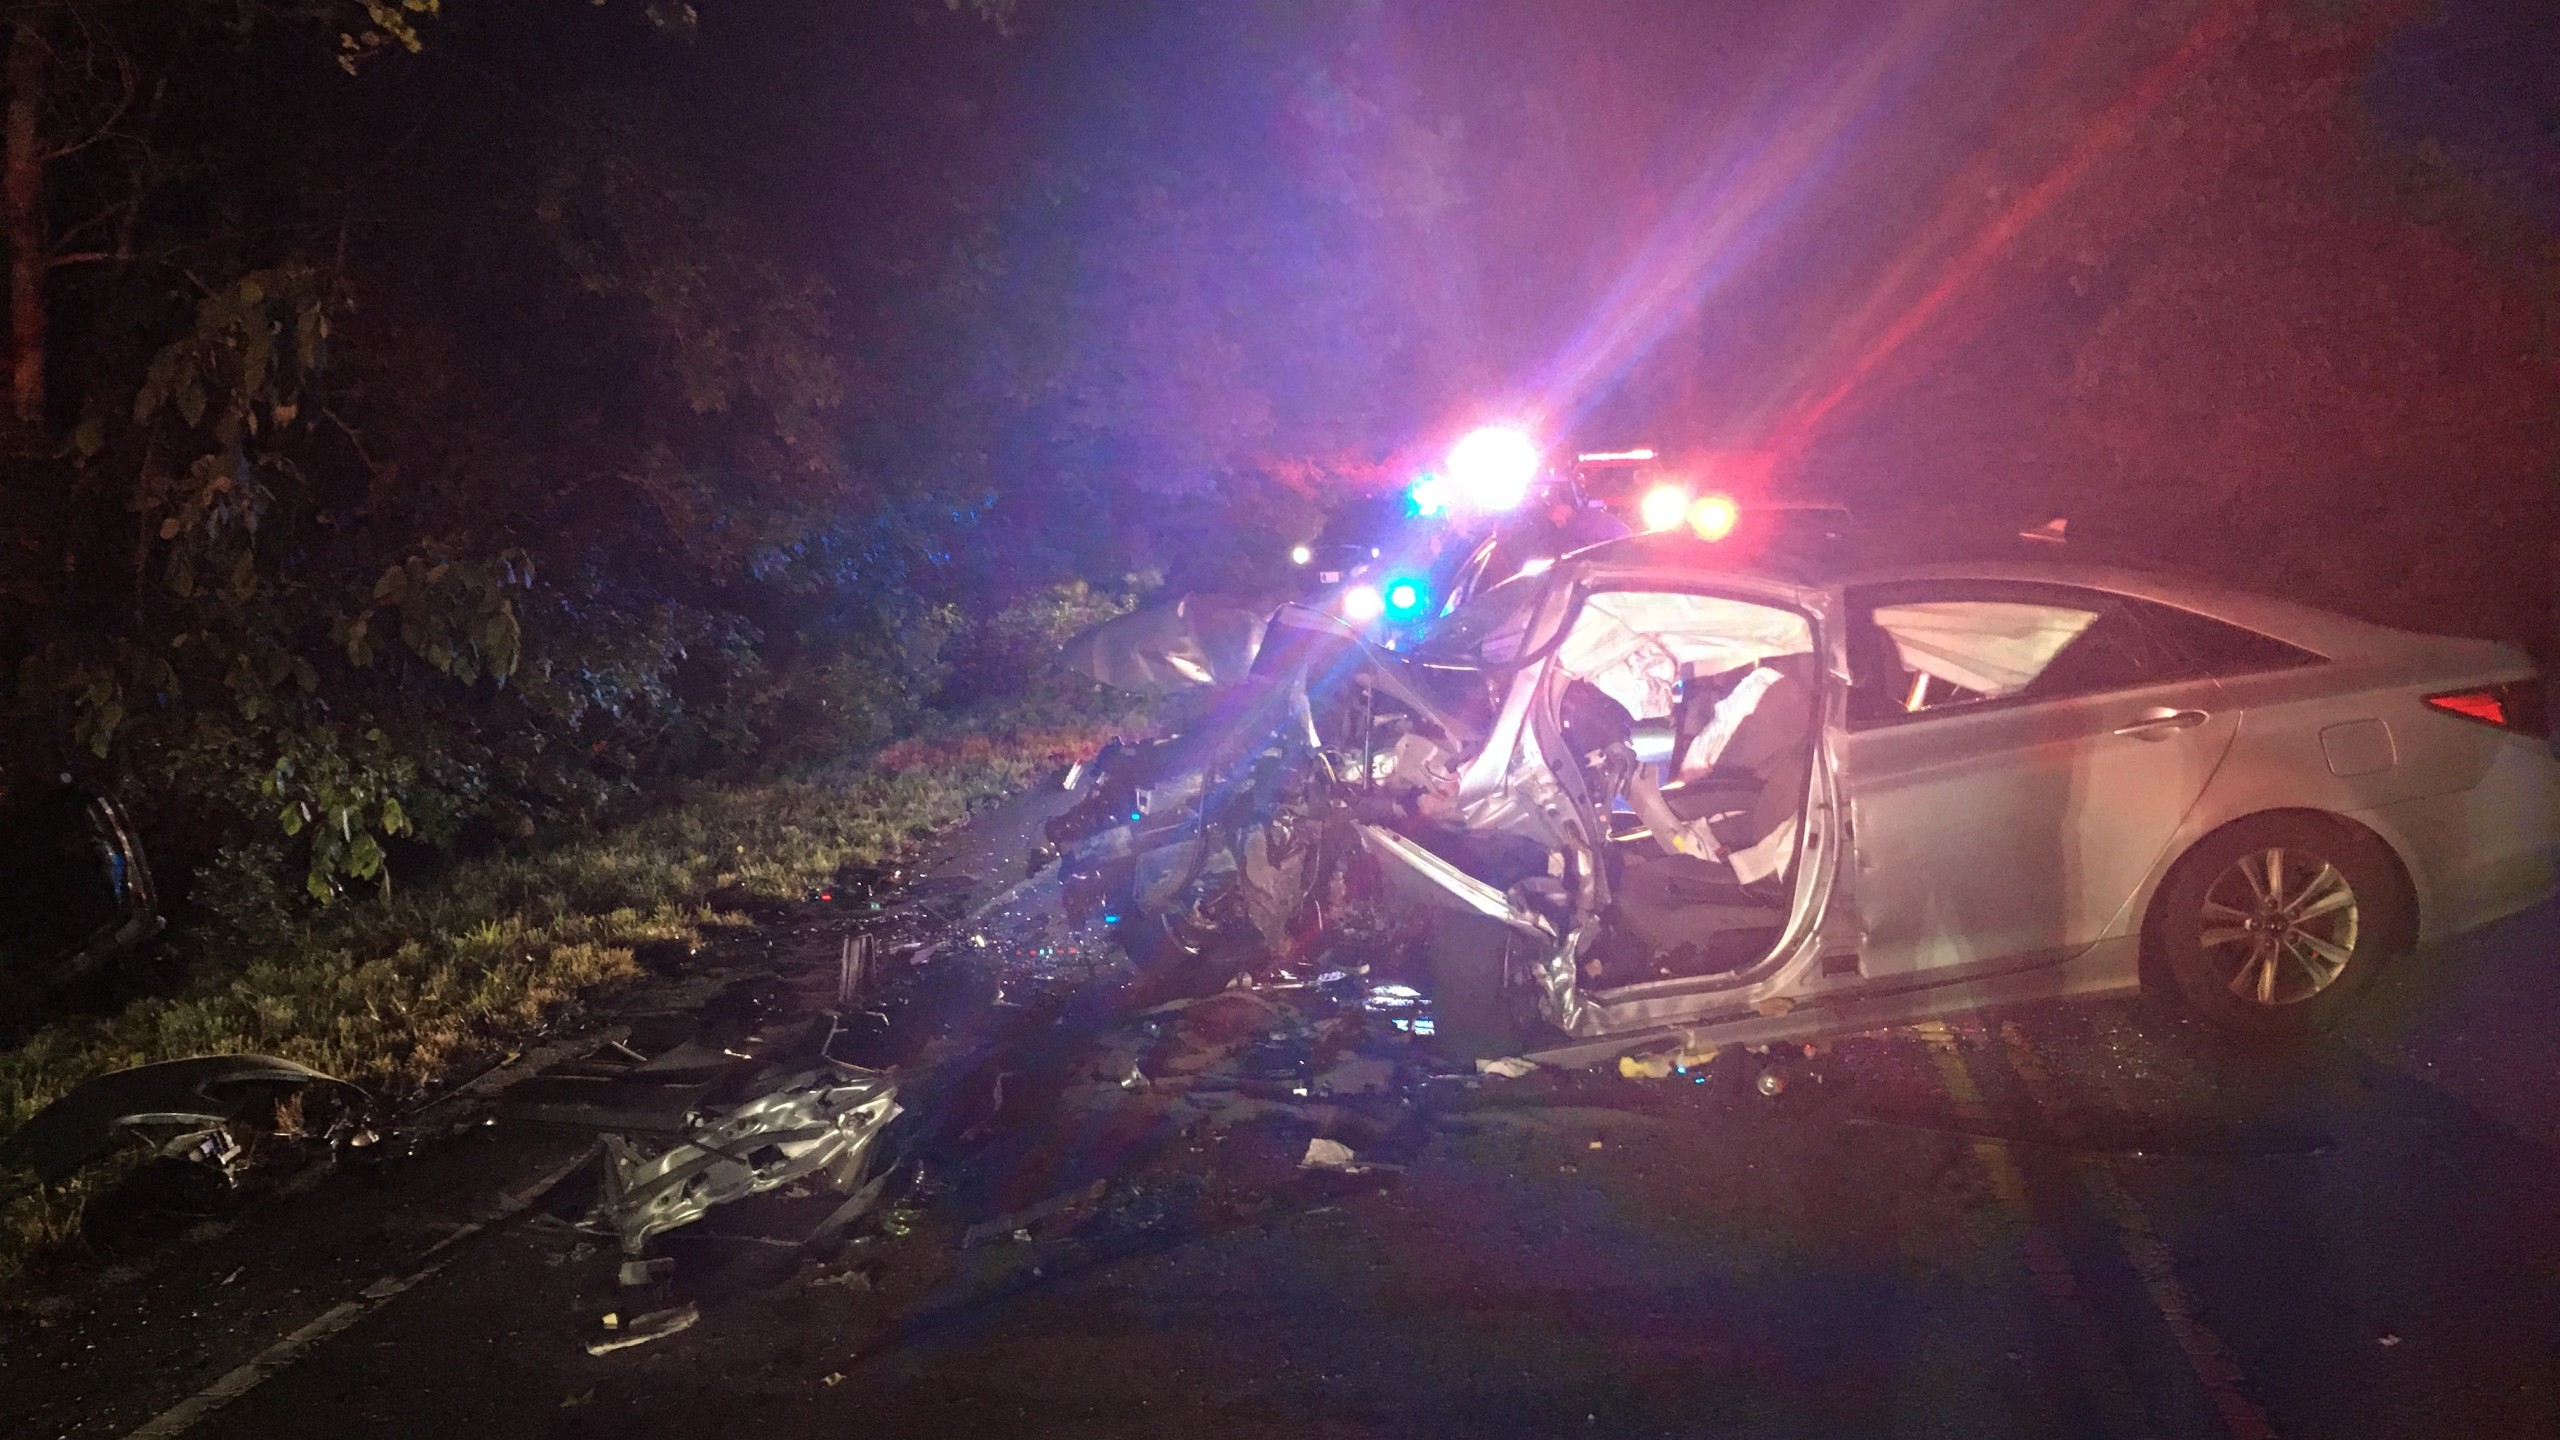 Vehicle destroyed after a crash in York County. (Photo by Virginia State Police)